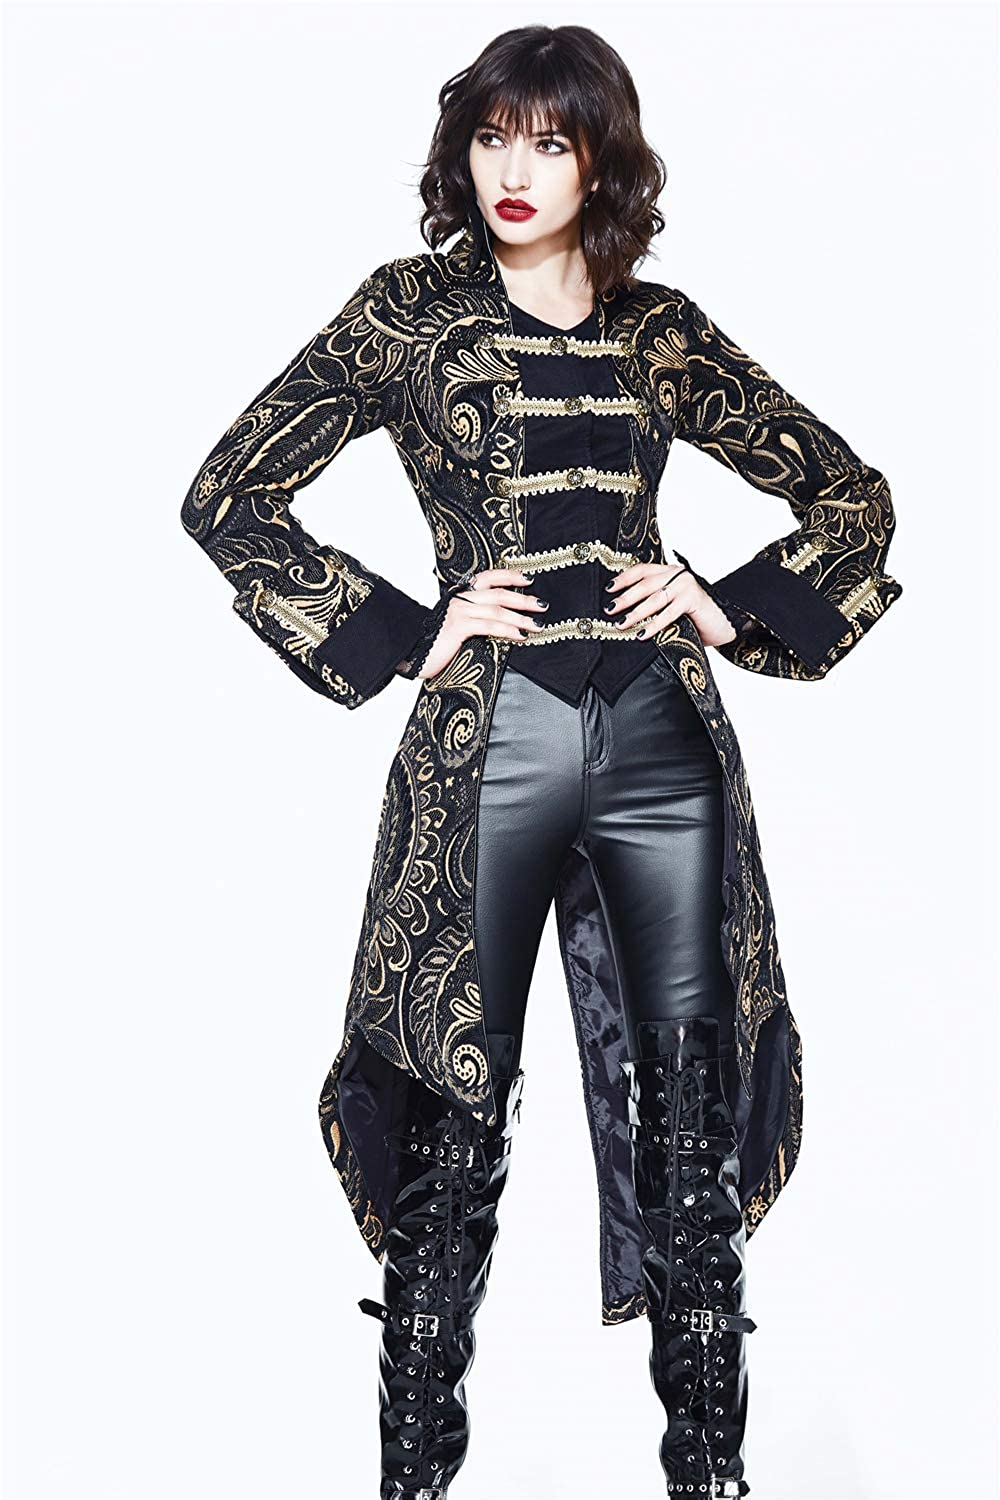 Lady Pirate Captain's Elegant Black and Gold Brocade Print Tailcoat with Attached Black Vest and Gold Braid Trim - DeluxeAdultCostumes.com